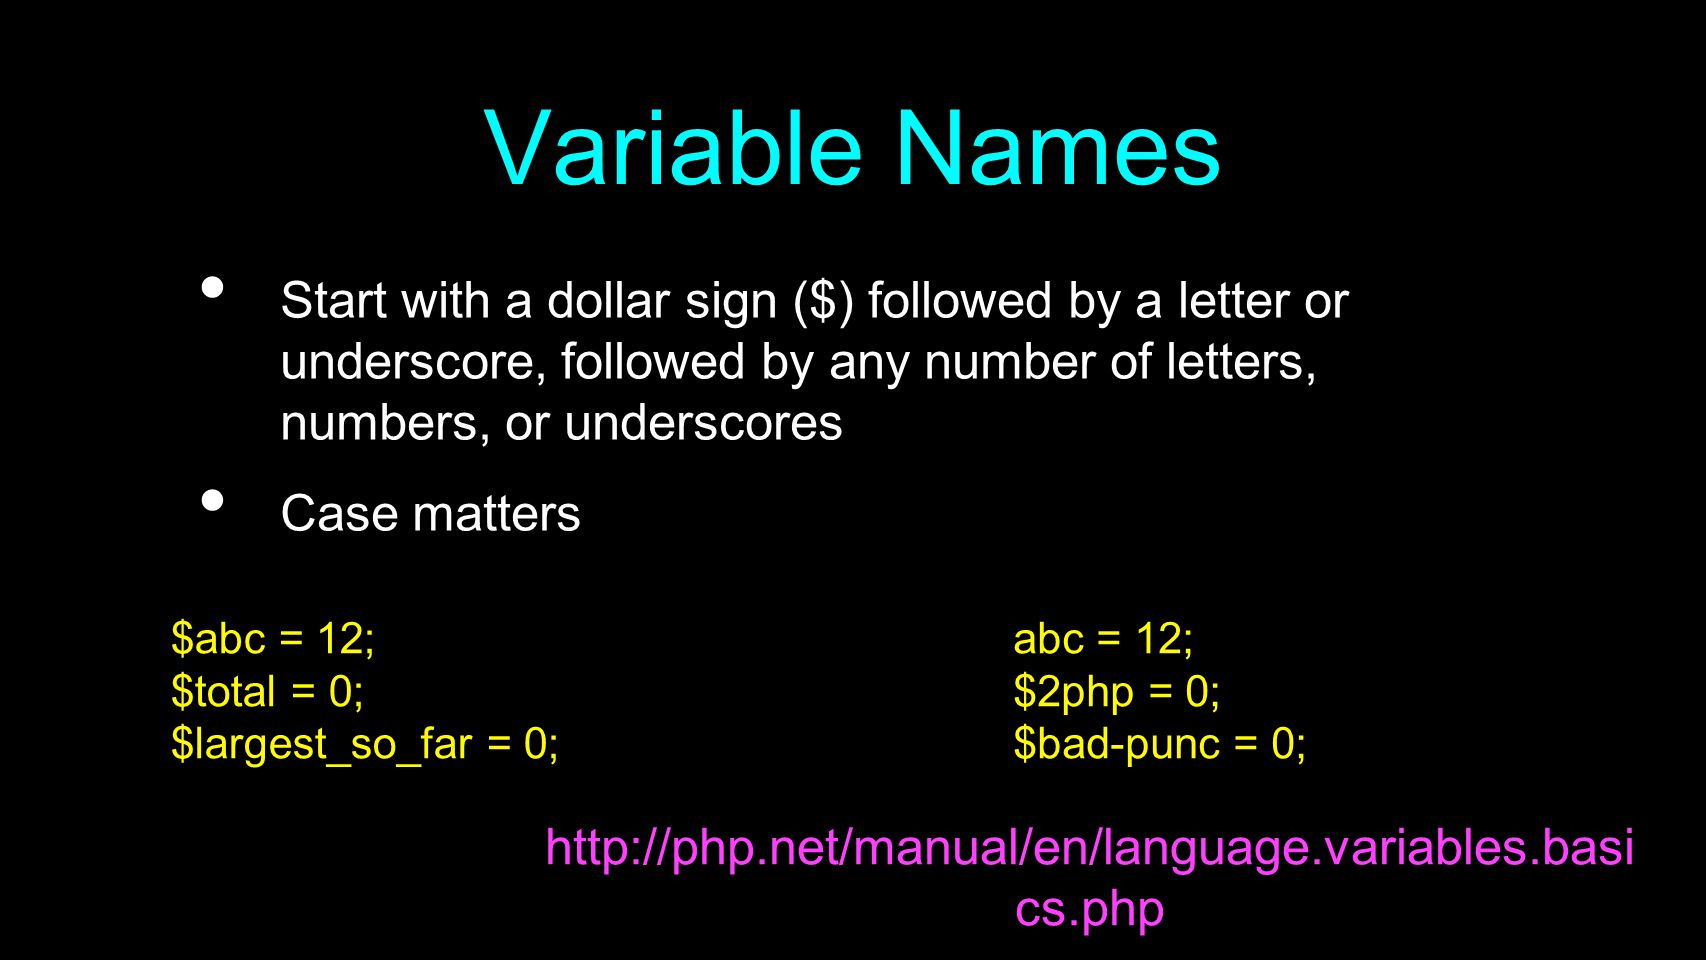 Variable Names Start with a dollar sign ($) followed by a letter or underscore, followed by any number of letters, numbers, or underscores Case matters http://php.net/manual/en/language.variables.basi cs.php $abc = 12; $total = 0; $largest_so_far = 0; abc = 12; $2php = 0; $bad-punc = 0;